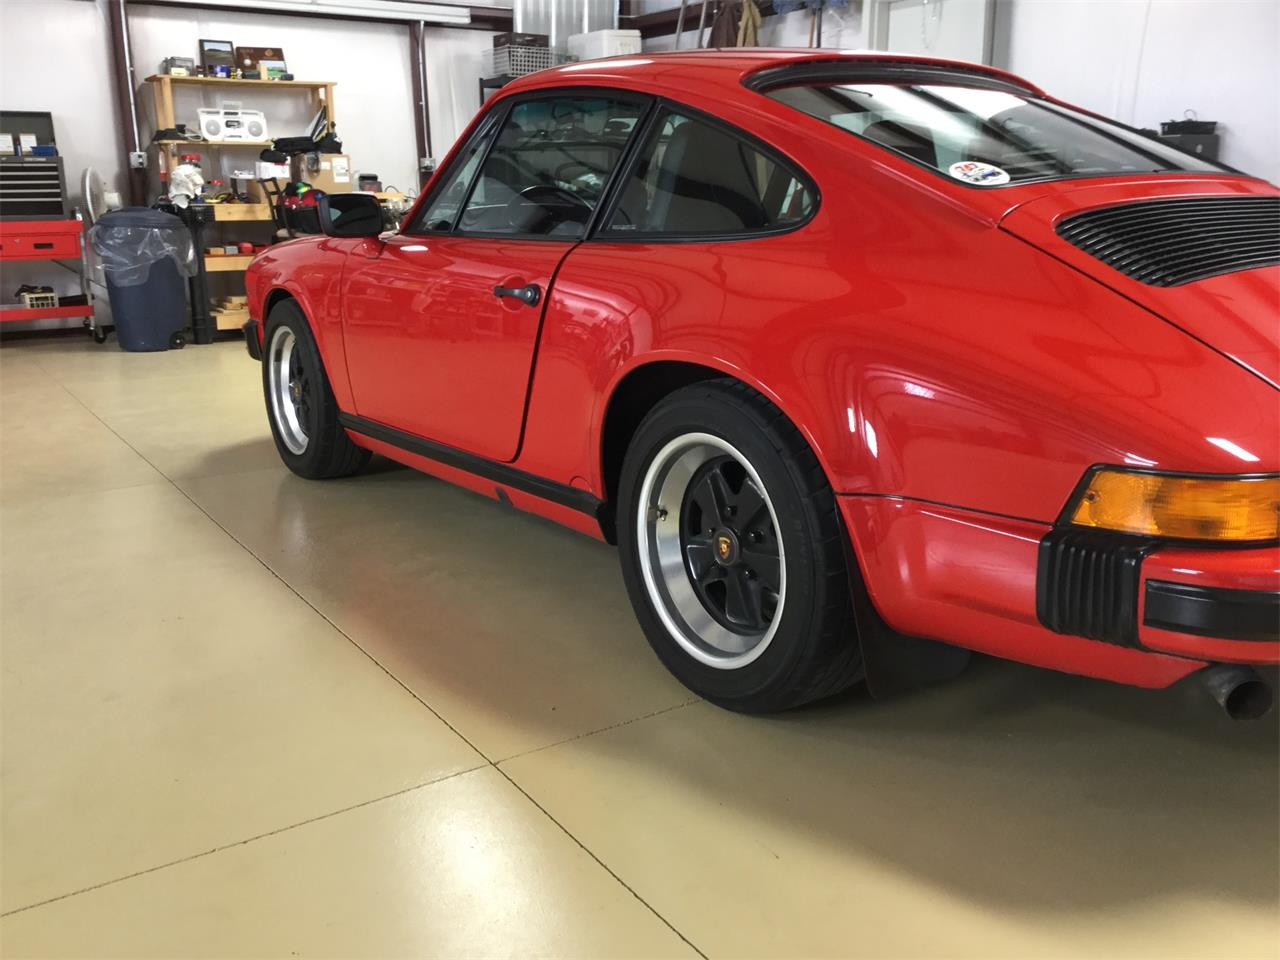 Large Picture of '88 Porsche 911 Carrera located in Utah Auction Vehicle - PWUZ